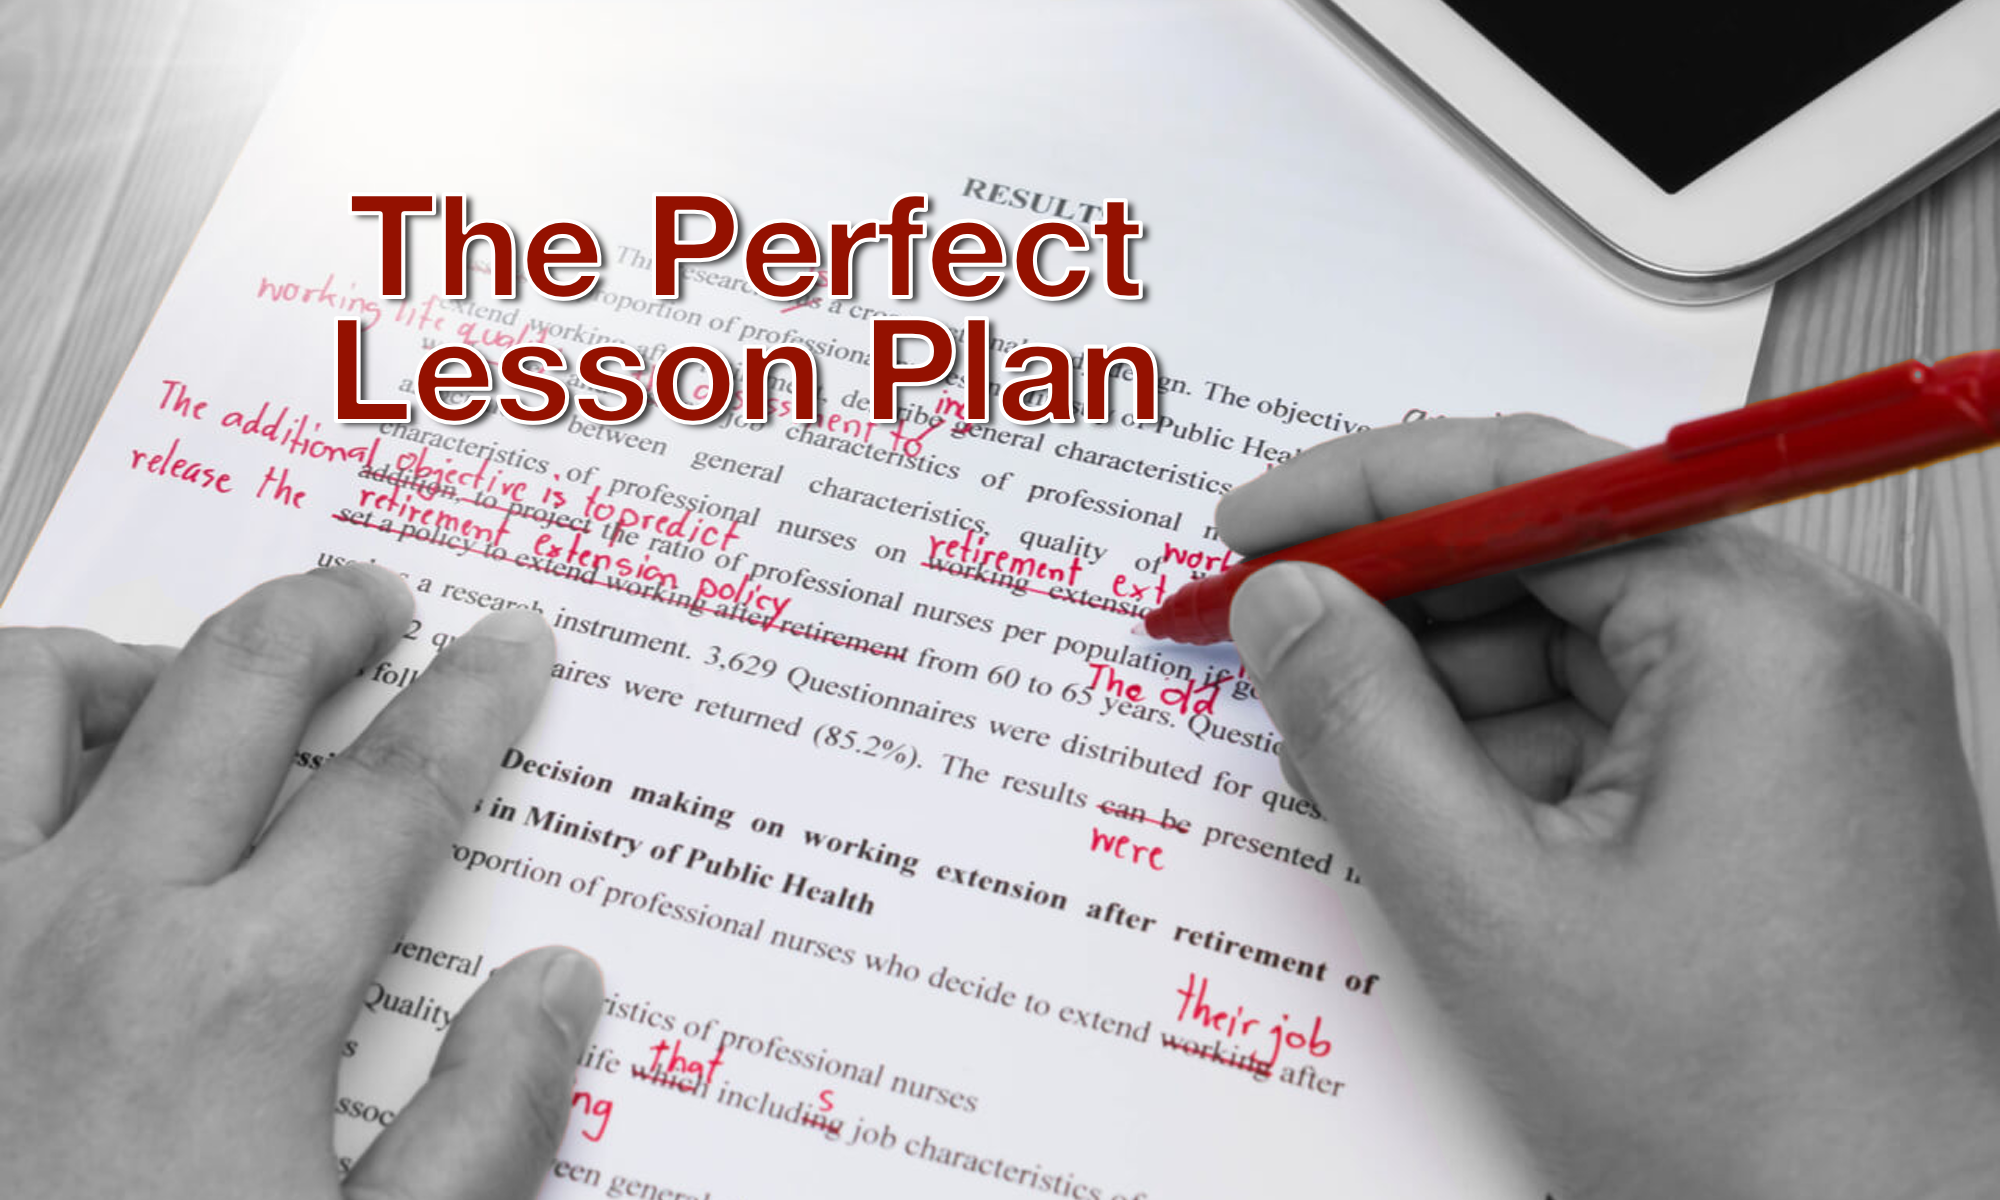 Creating The Perfect Lesson Plan: 10 Steps & 8 Essential